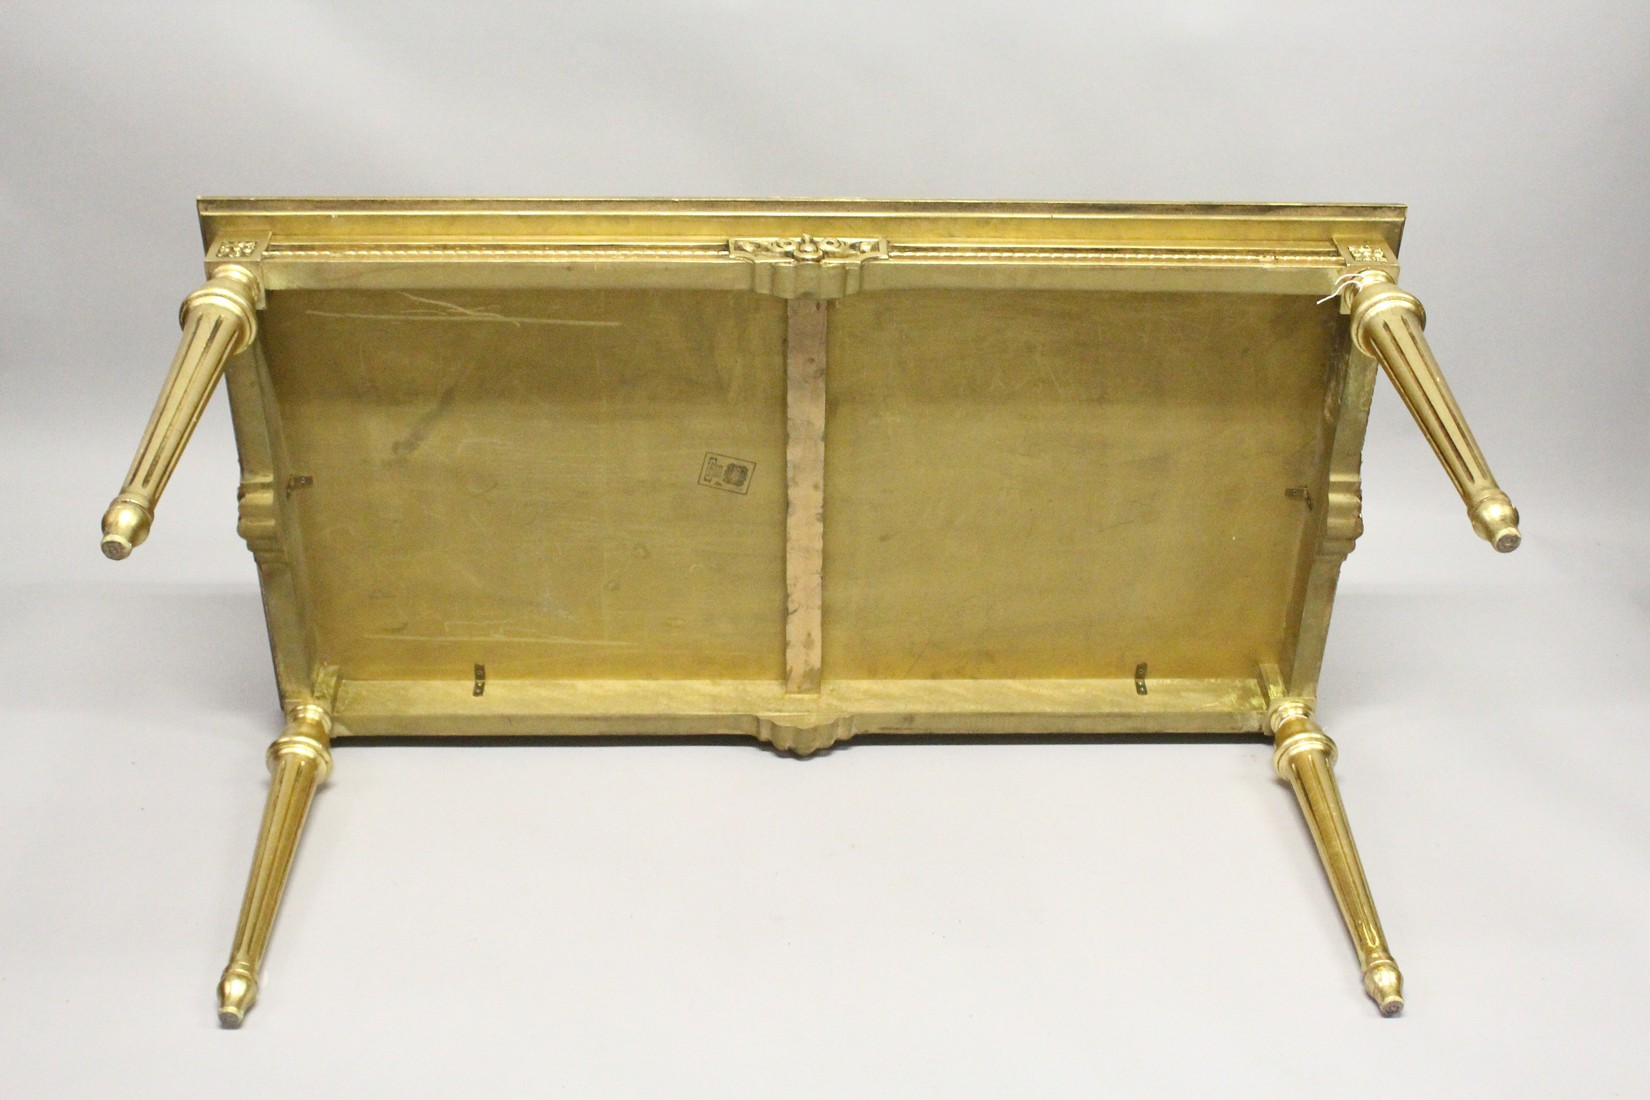 A 20TH CENTURY DECORATIVE GILTWOOD LOW TABLE, with floral painted decoration, on turned tapering - Image 5 of 6